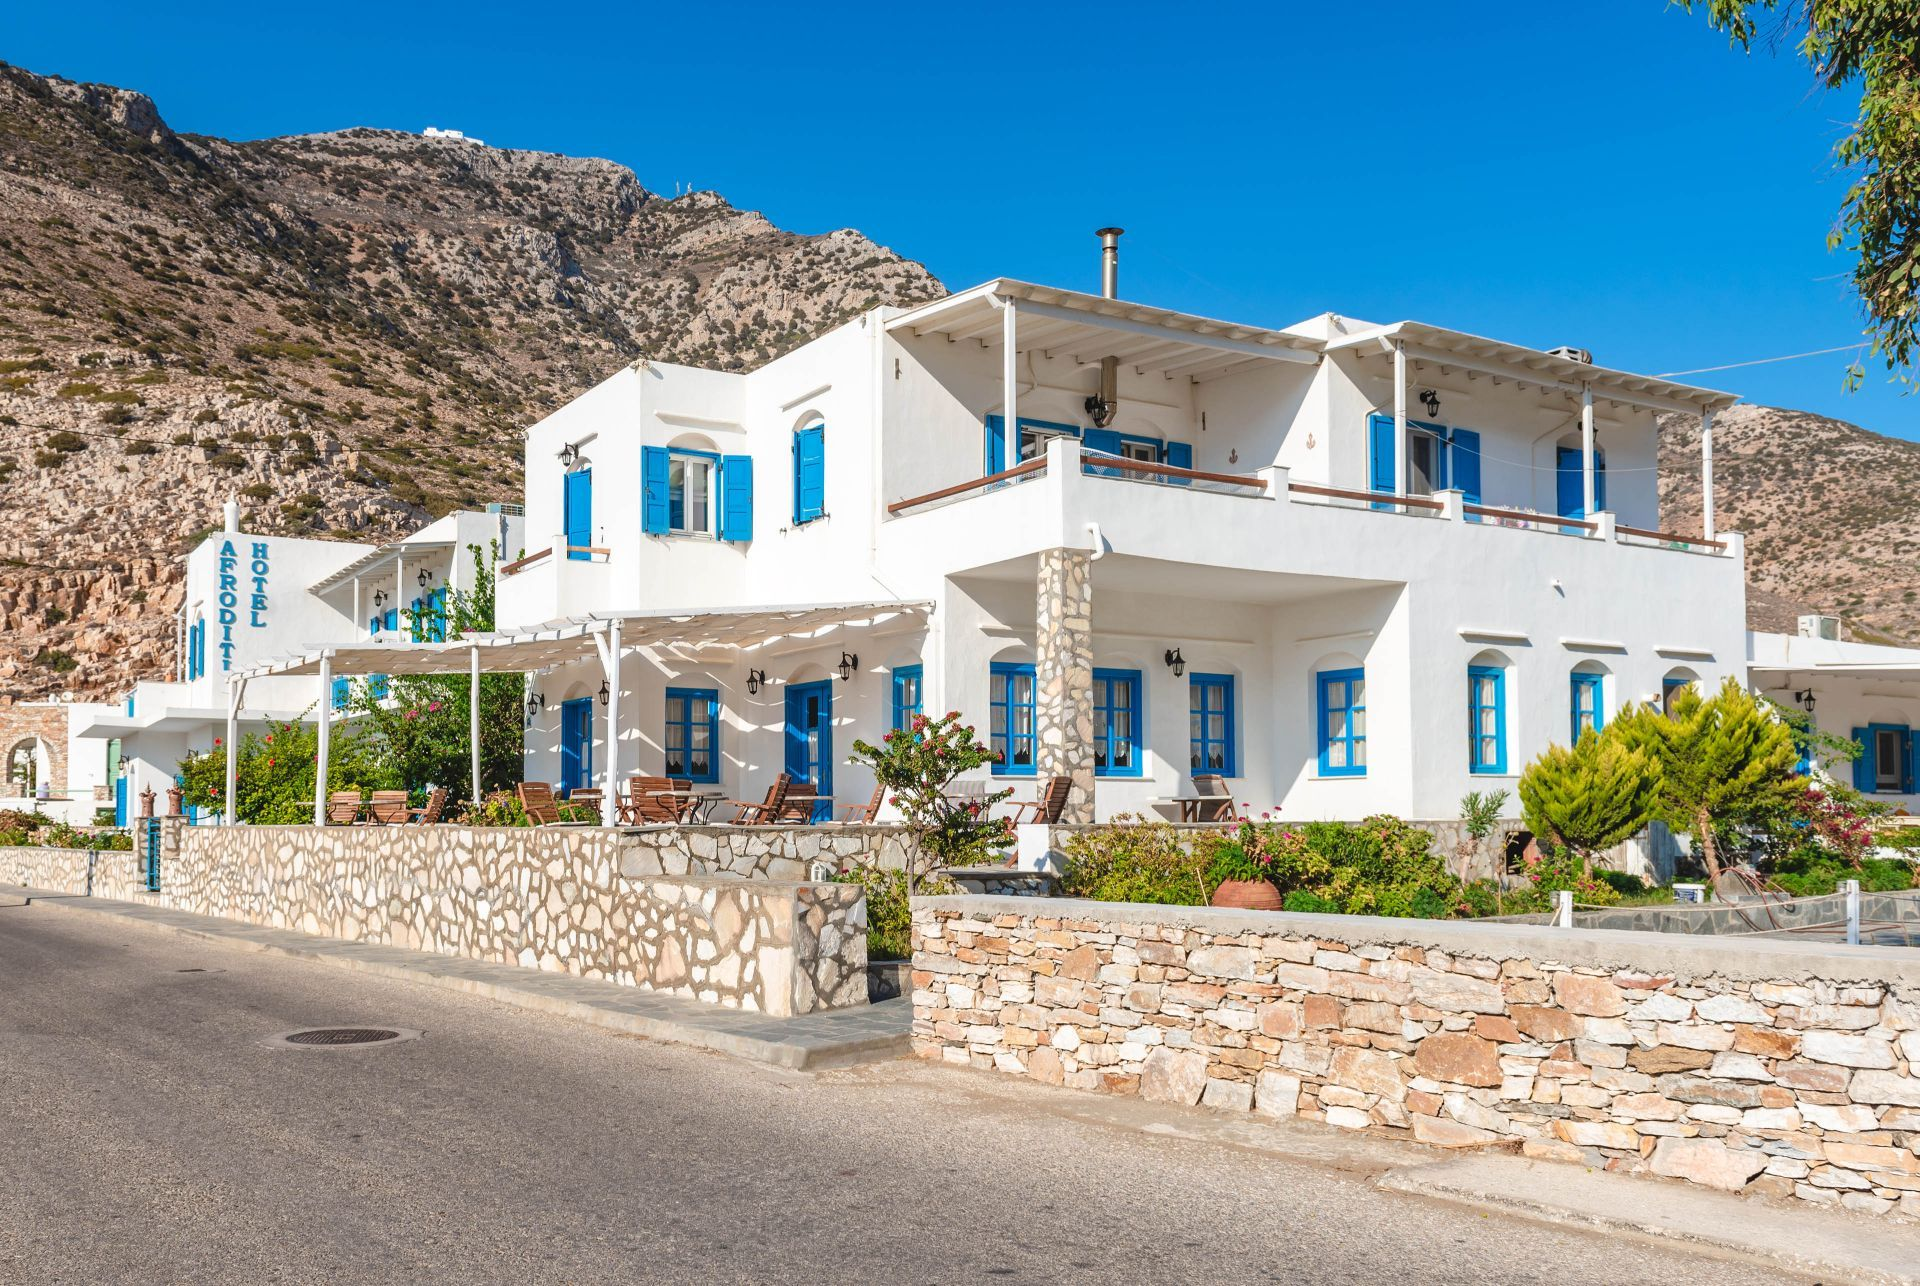 Accommodation and hotels in Sifnos